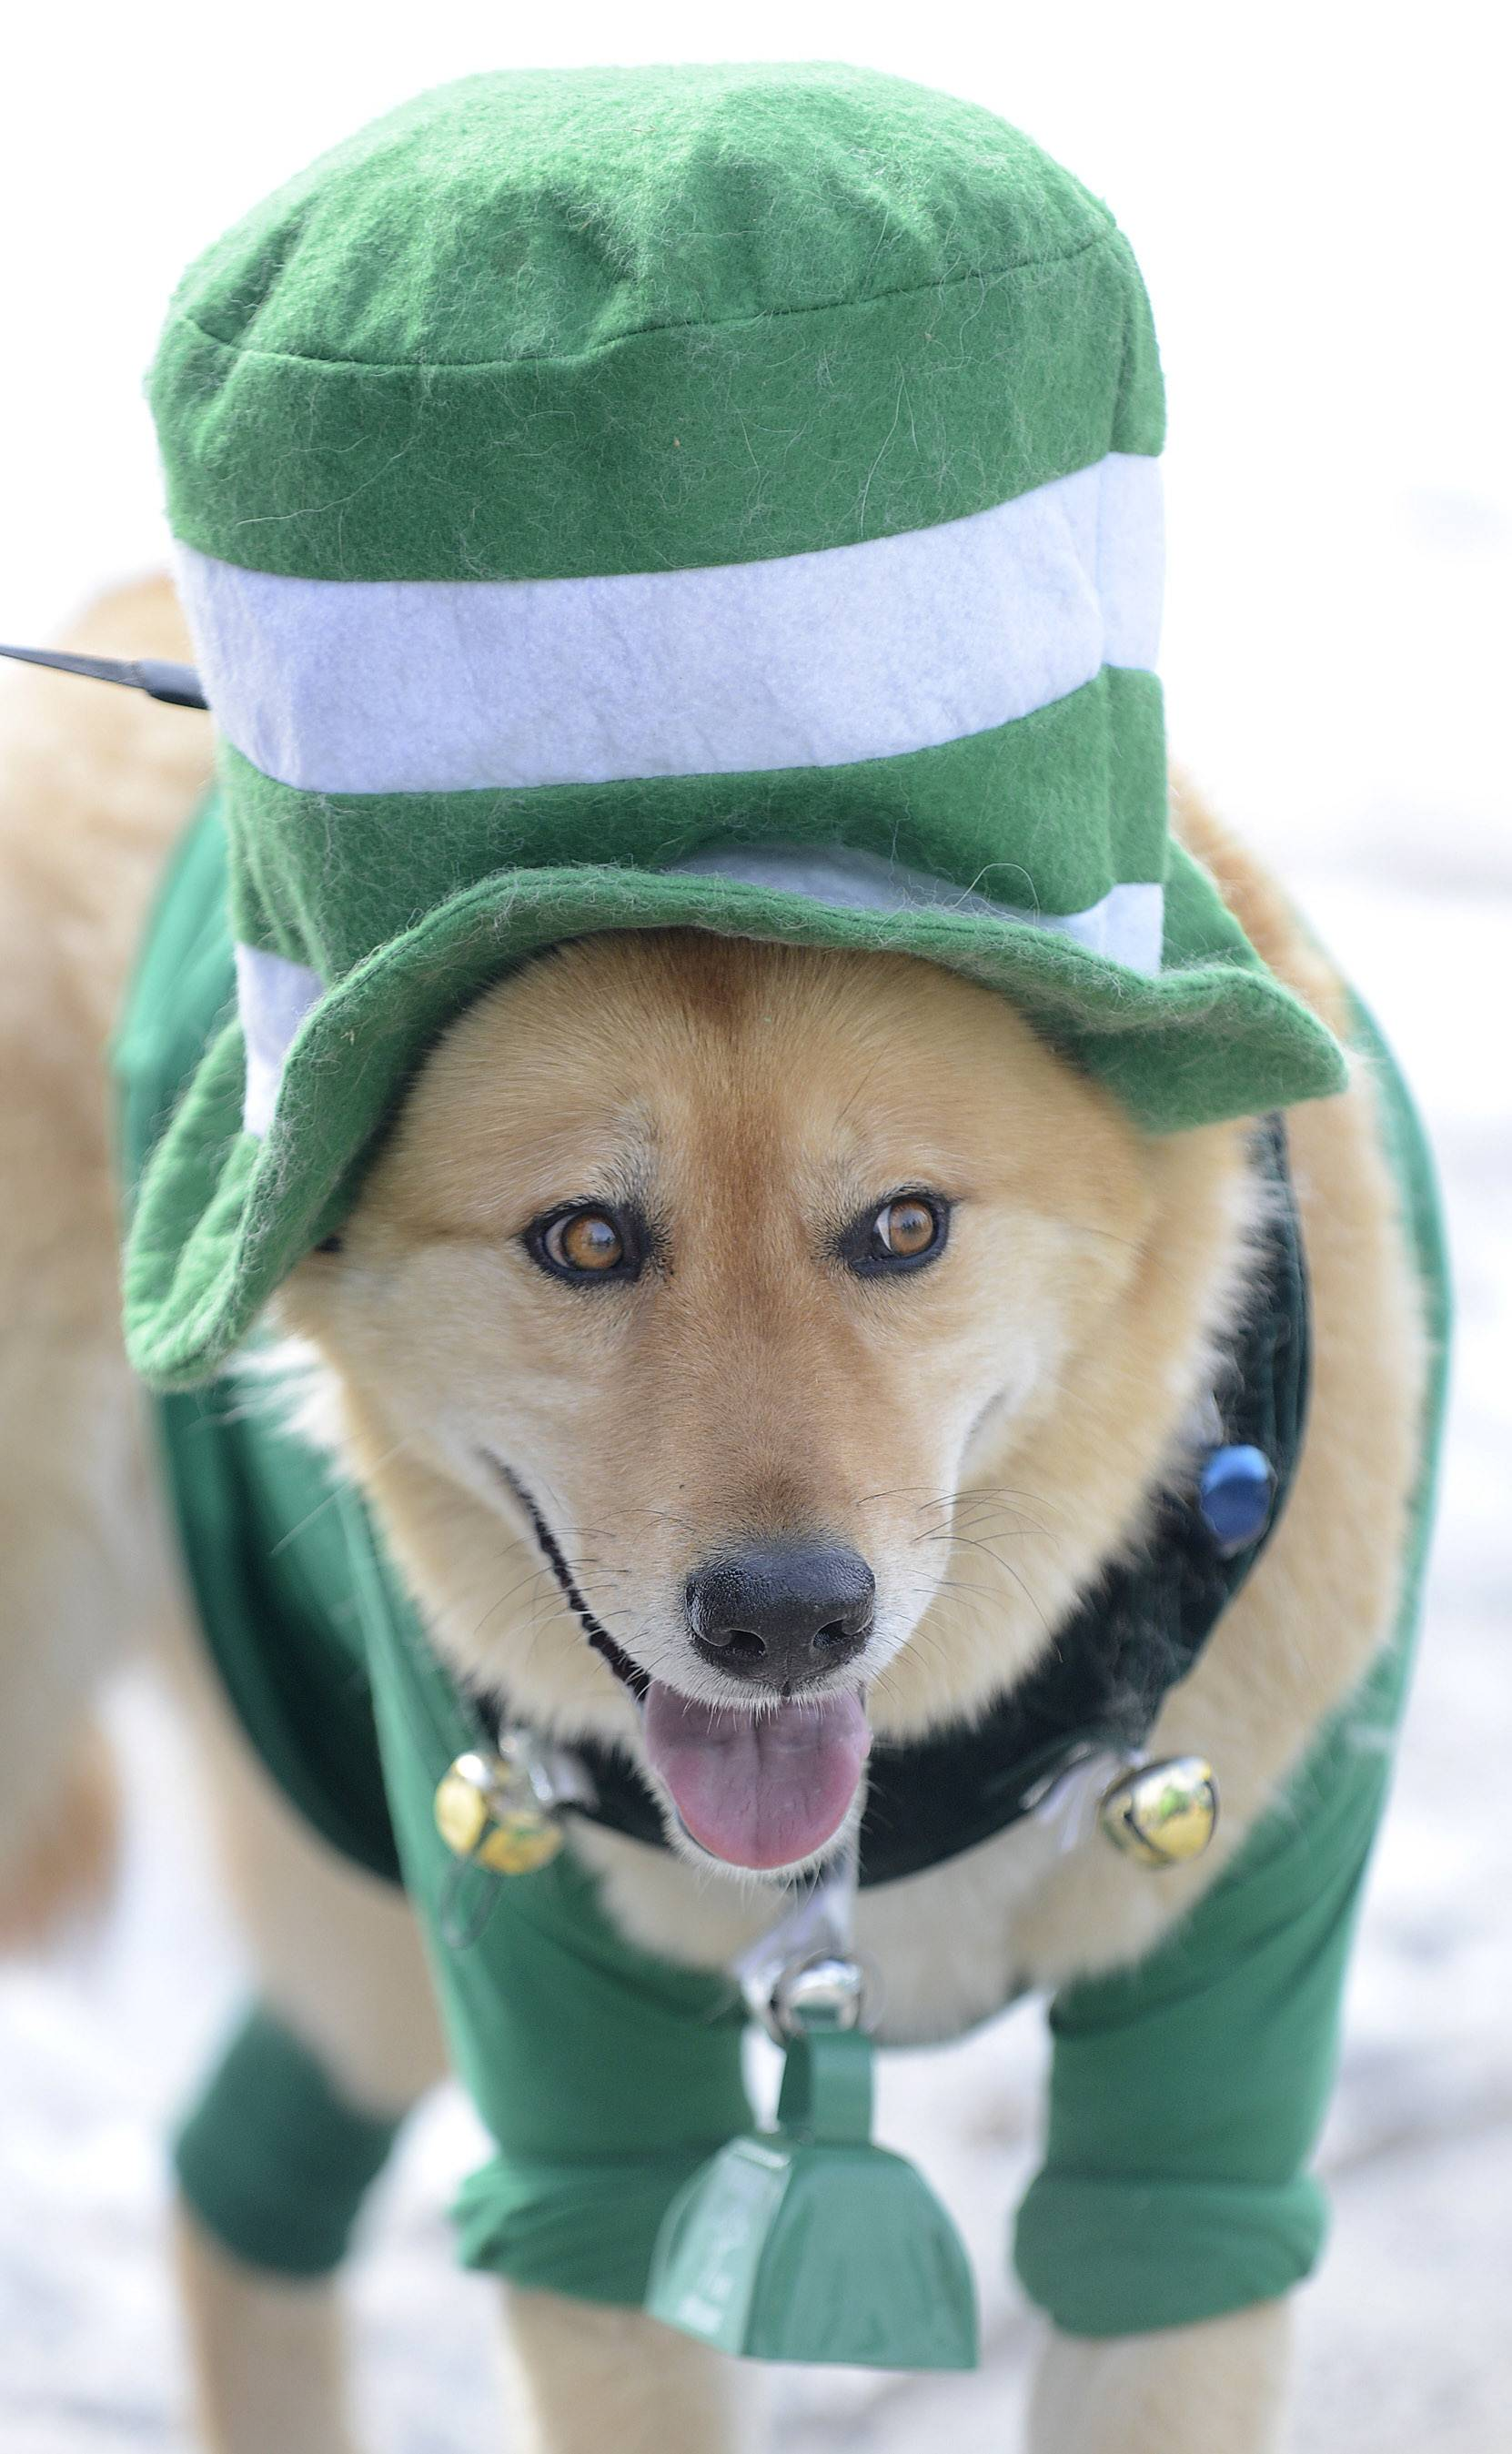 A dog named Seamus Patrick, 6, owned by Mary Ann and Steve Smunt of St. Charles, waits to walk with other dogs with the St. Charles Veterinary Clinic in the St. Patrick's Day parade in St. Charles on Saturday.